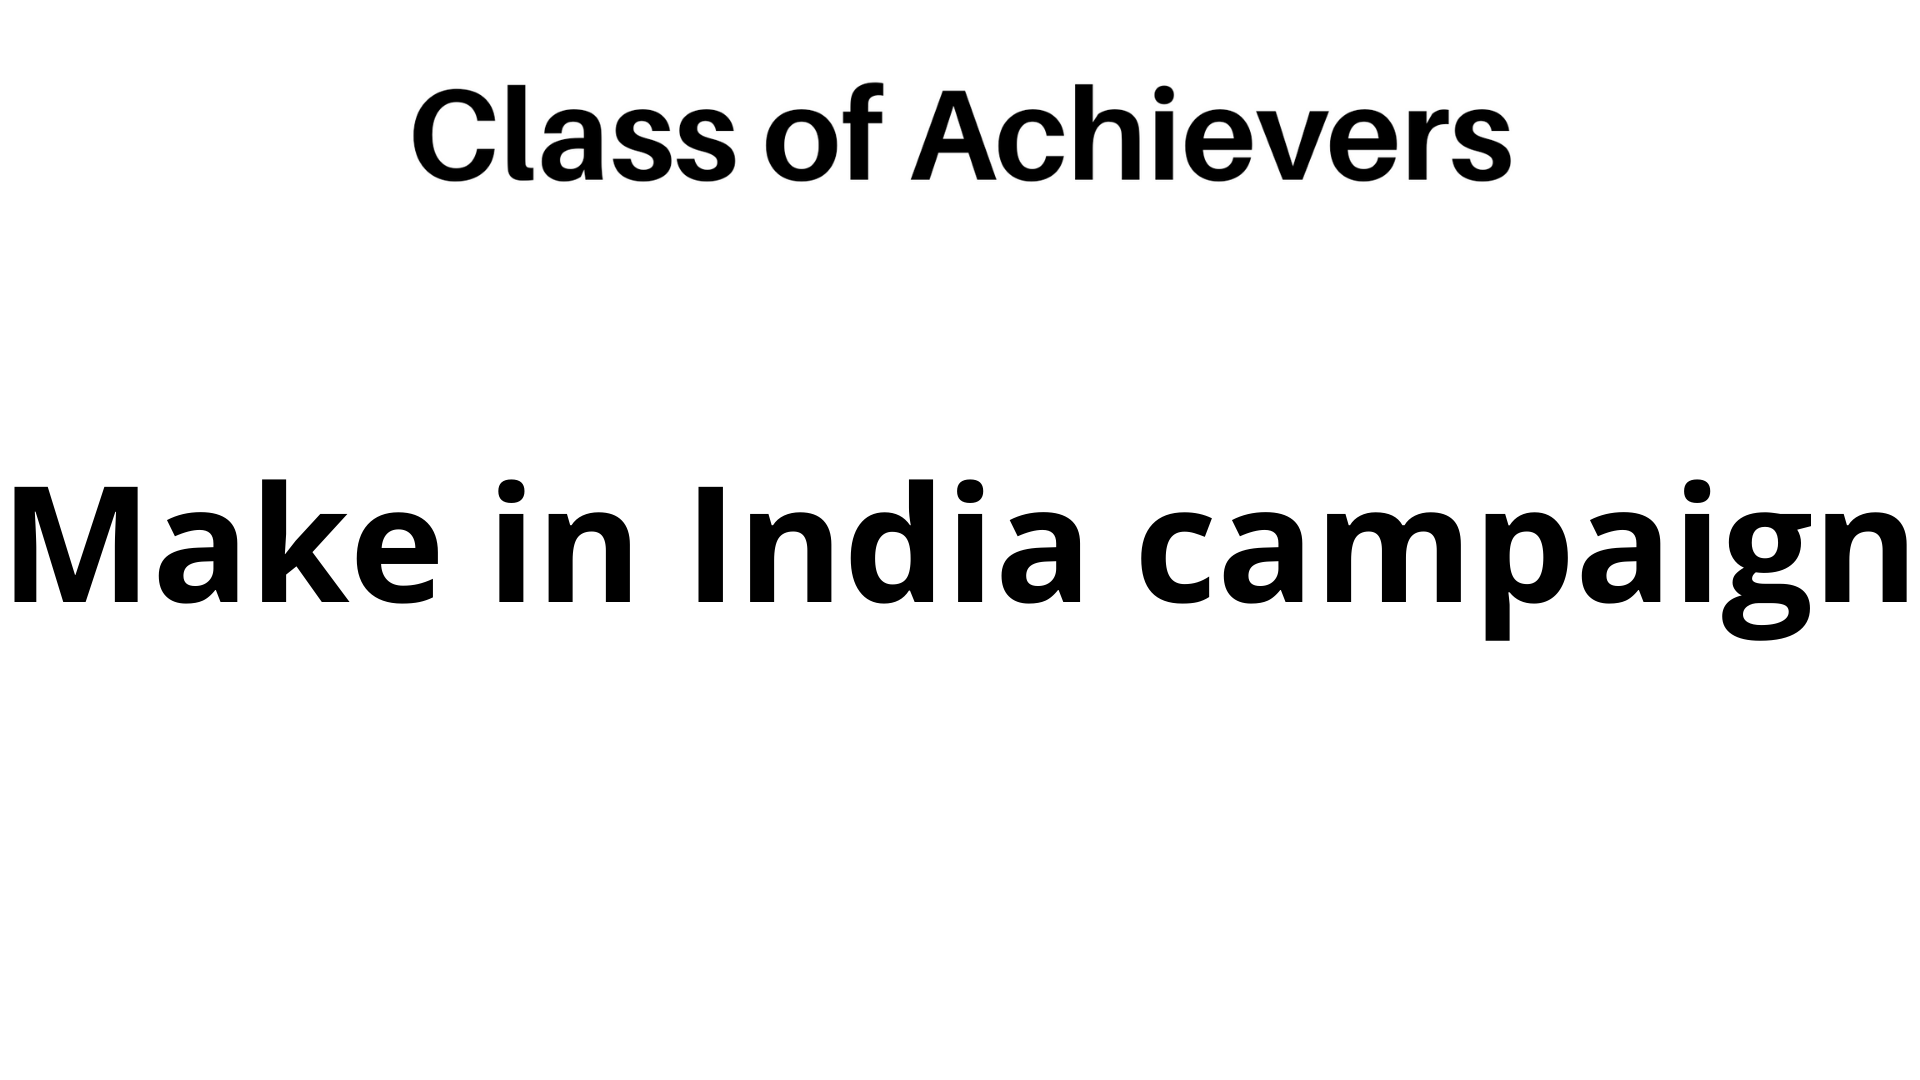 Essay on make in india campaign